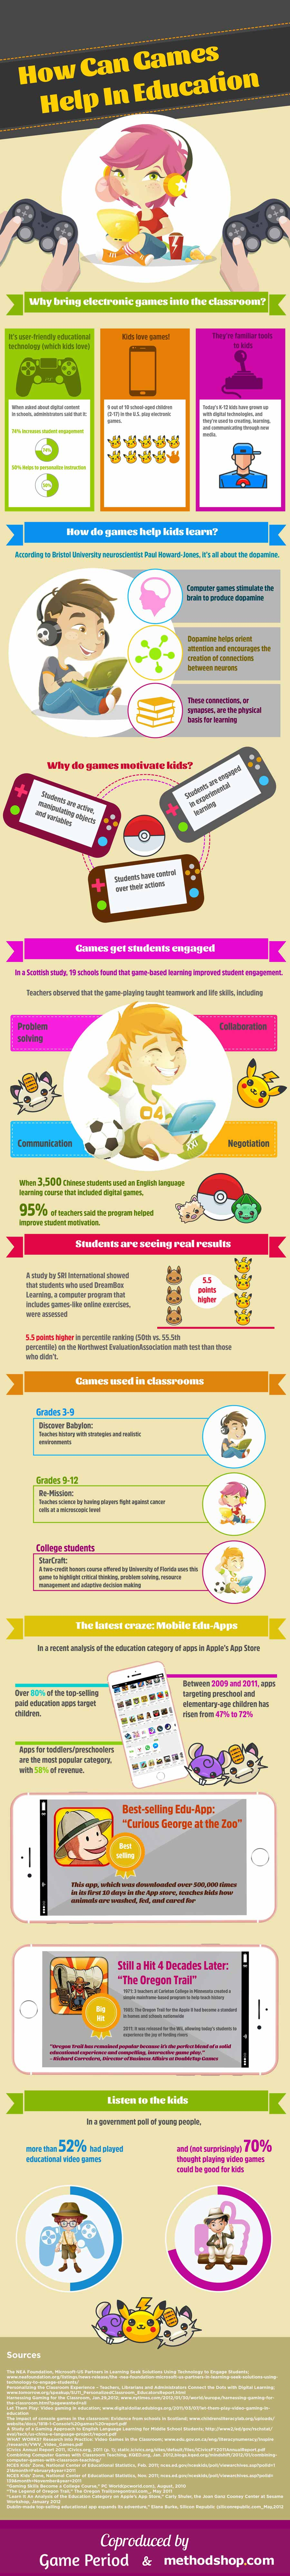 How Games Can Help In The Education Process